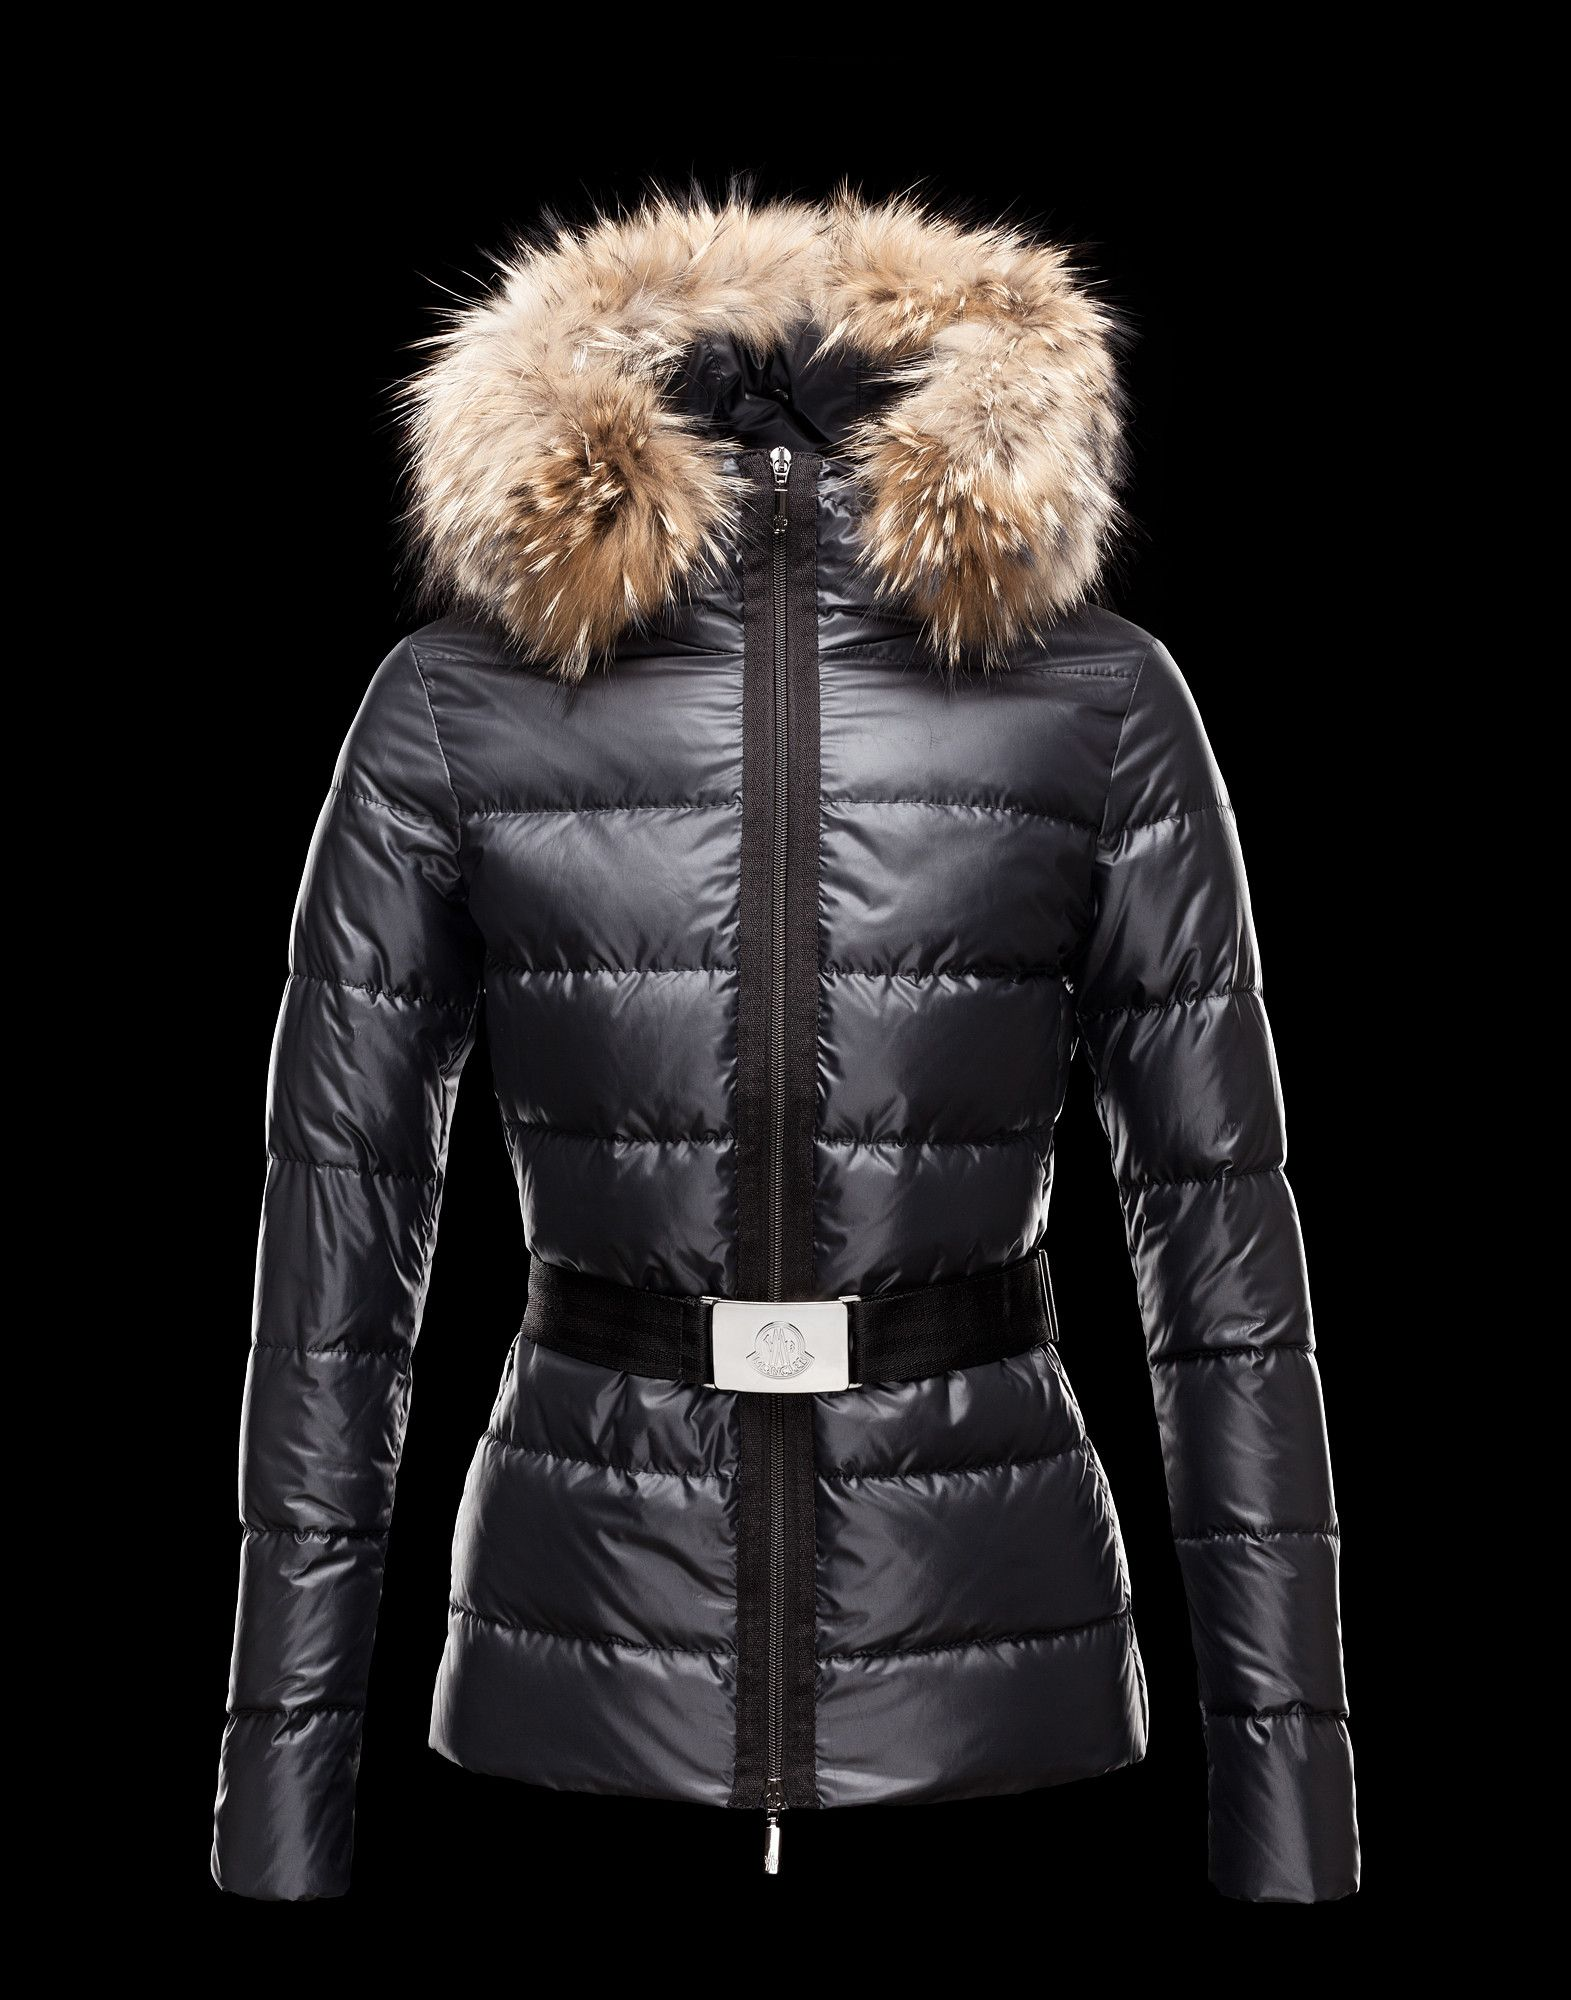 d17aa9419 MONCLER Women - Fall Winter 12 - OUTERWEAR - Jacket - ANGERS